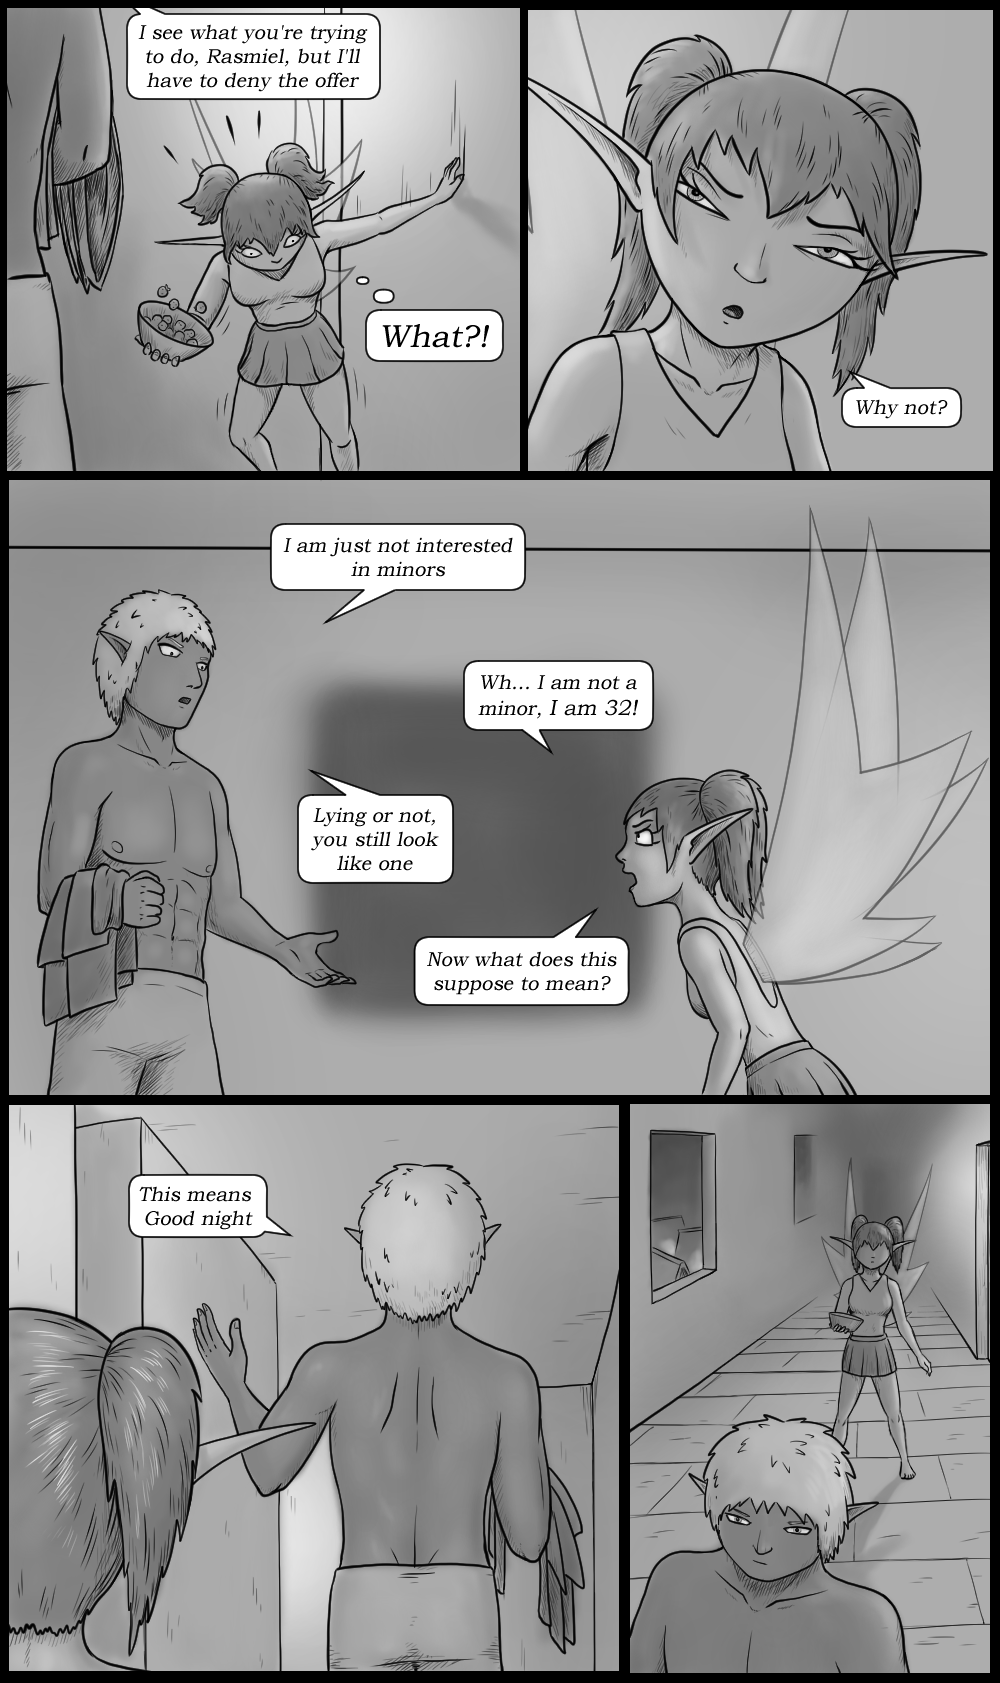 Page 81 - We don't have minors in this story!